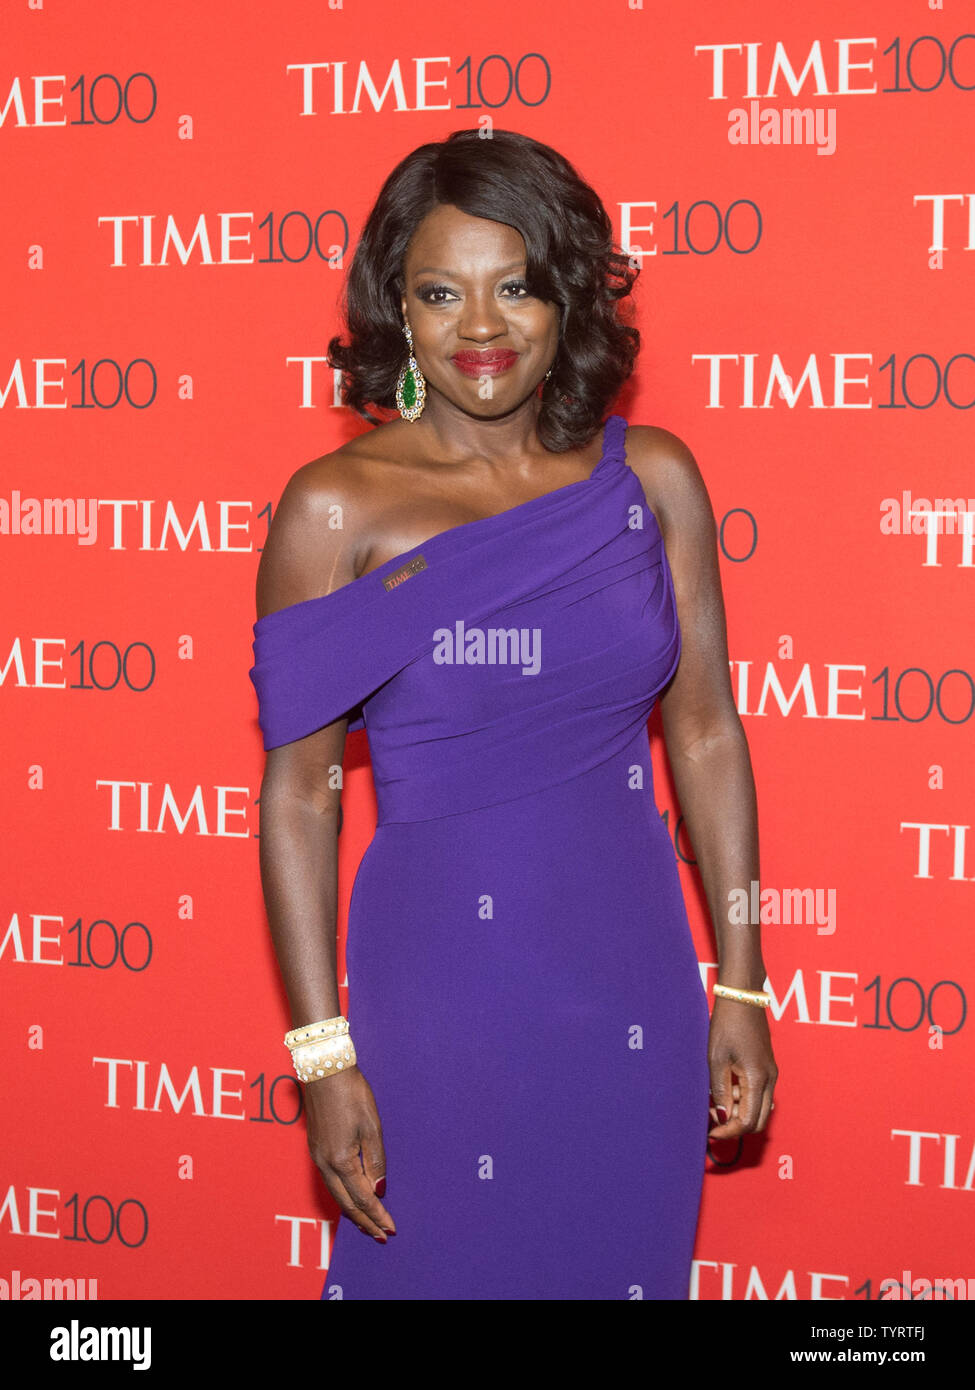 Viola Davis arrives on the red carpet at the TIME 100 Gala